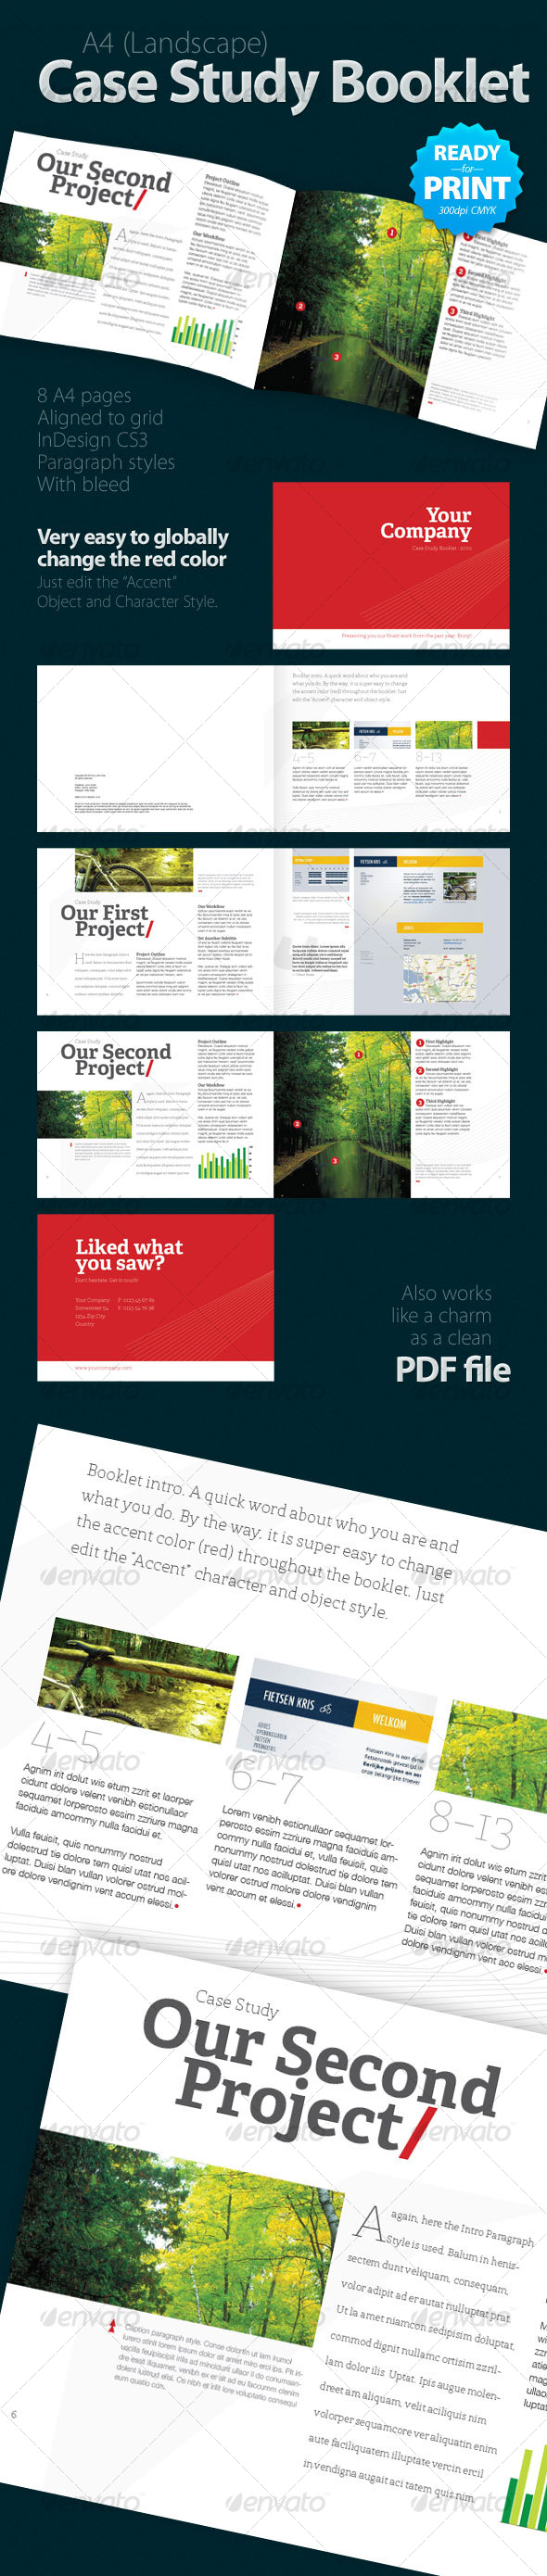 A4 case study booklet indesign project